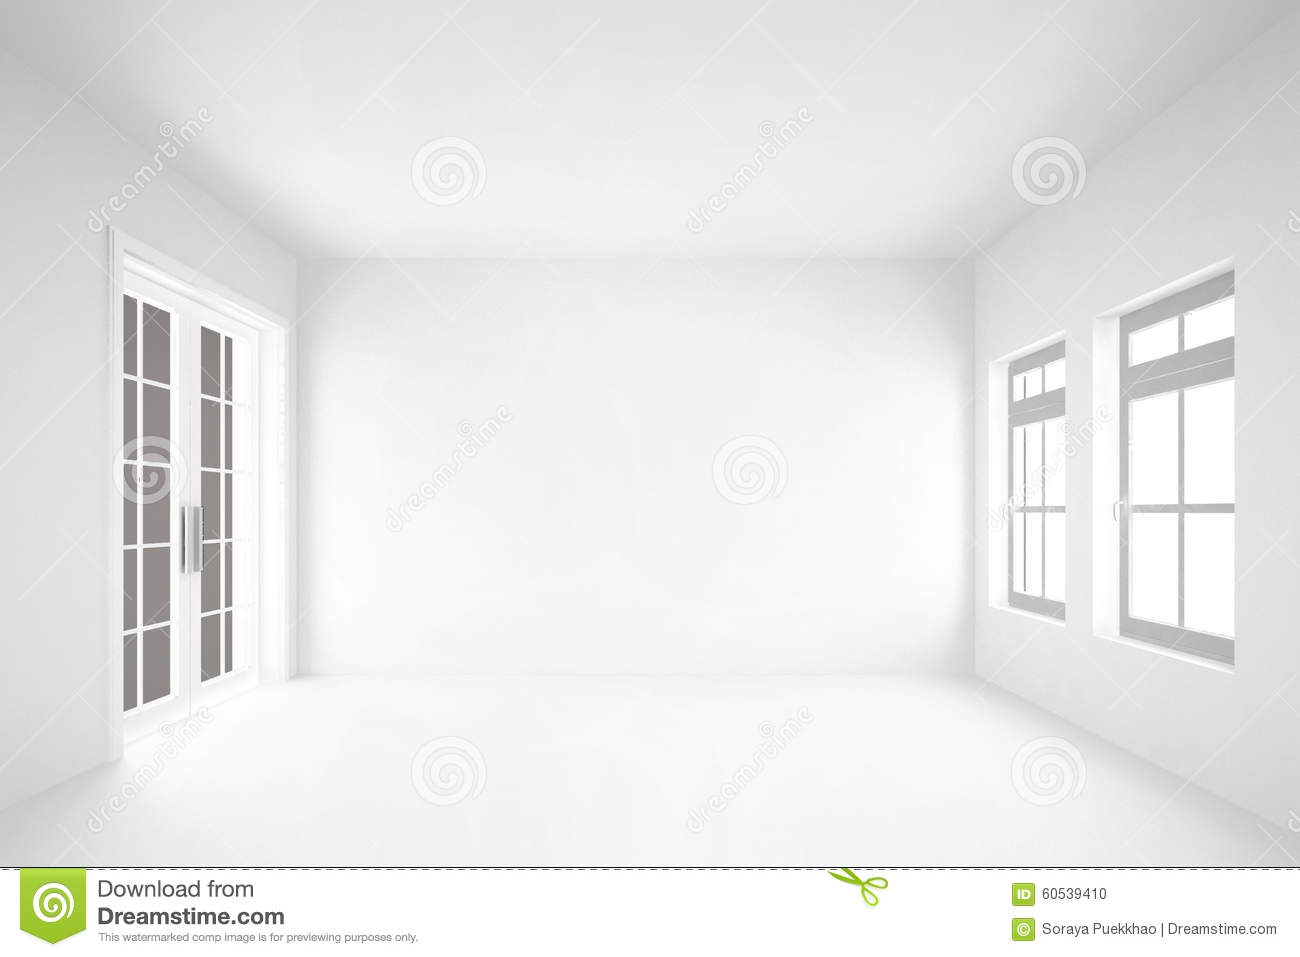 Empty living room with large windows can be as background stock - Background Door Empty Interior Room